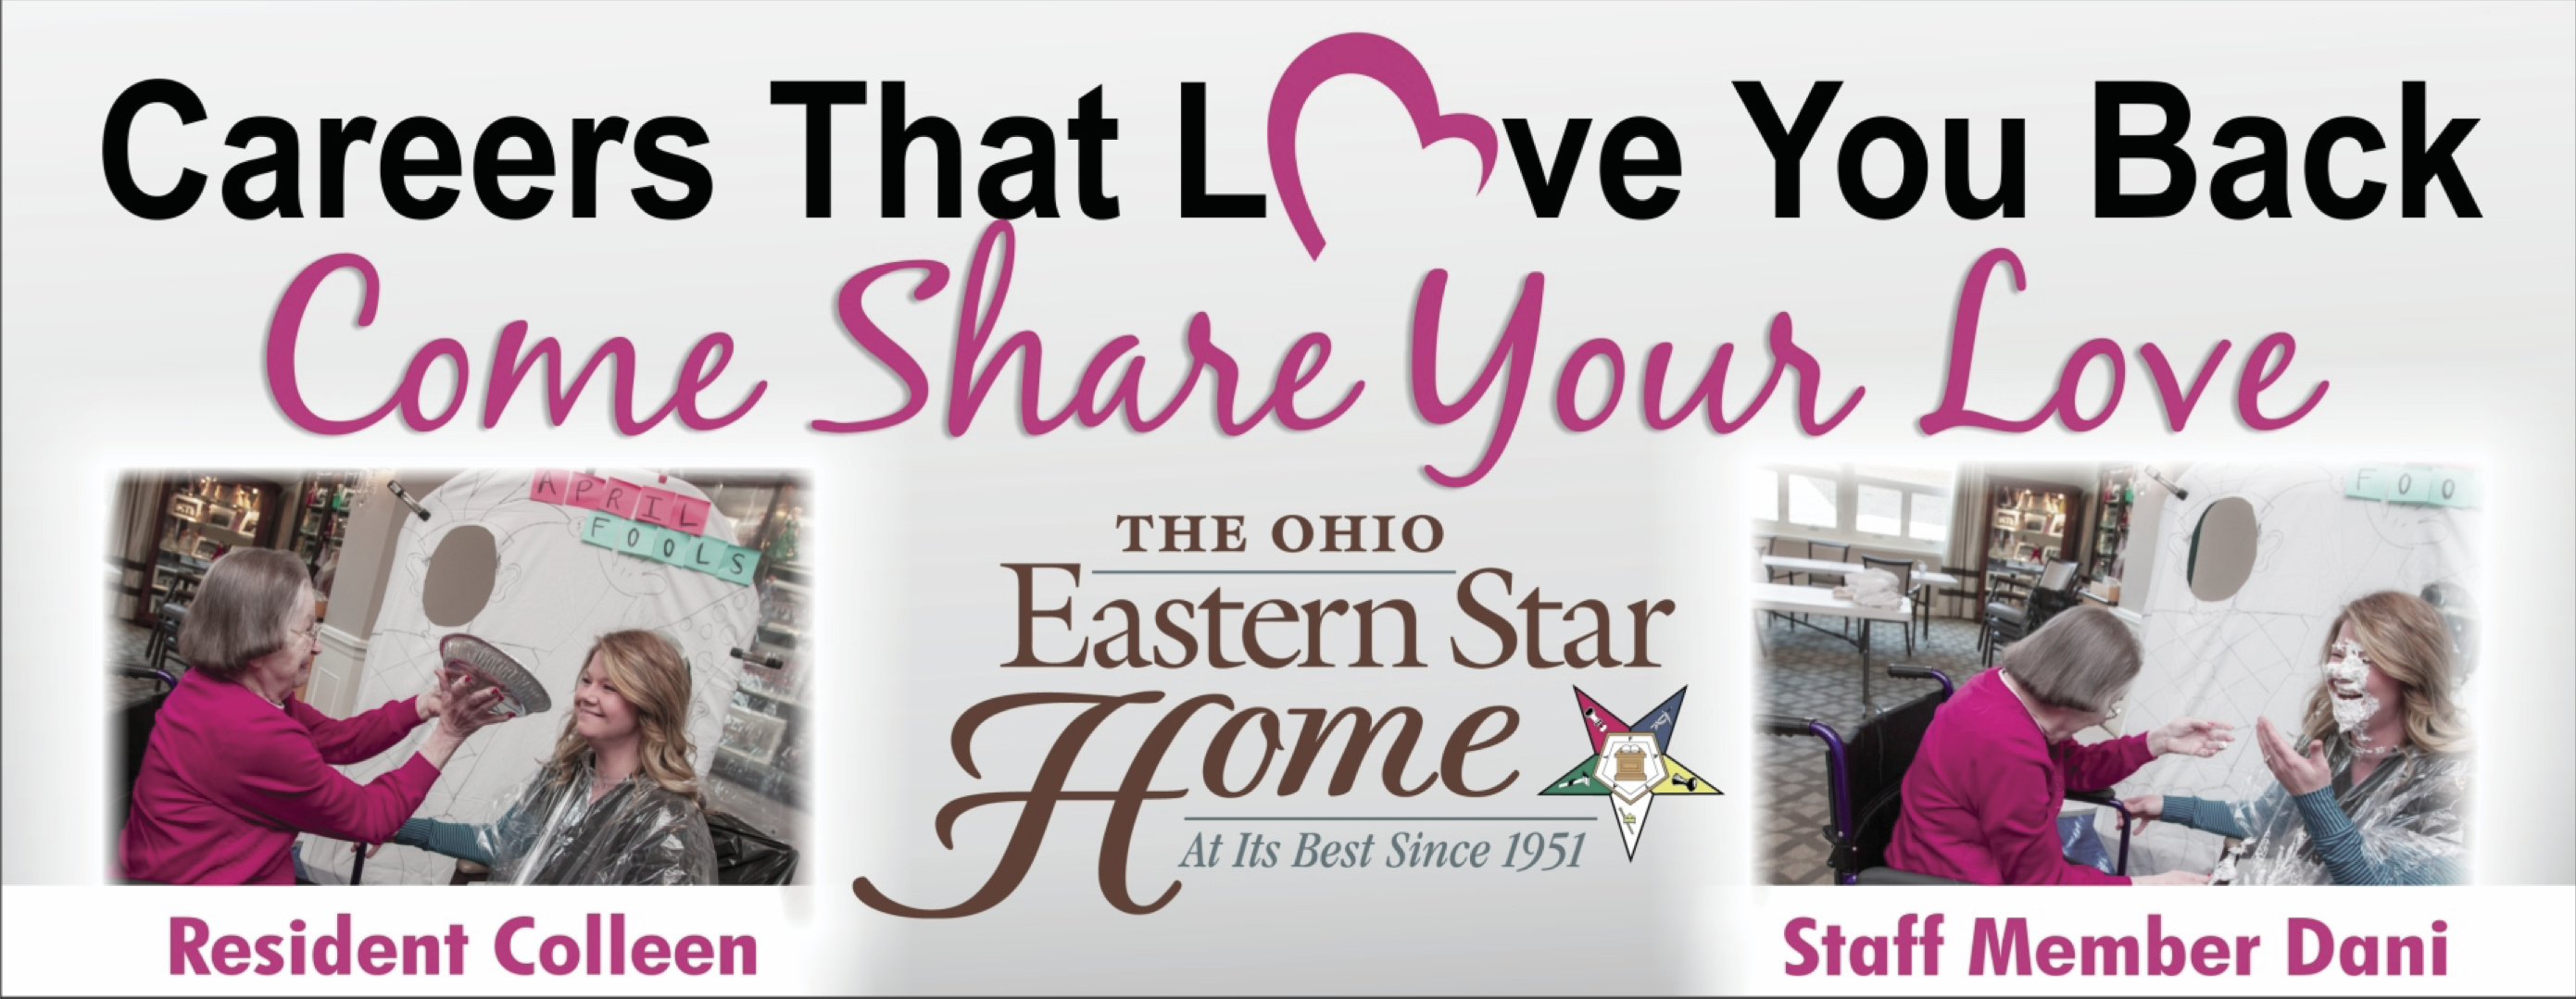 The OHio Eastern Star Home | Careers That Love You Back